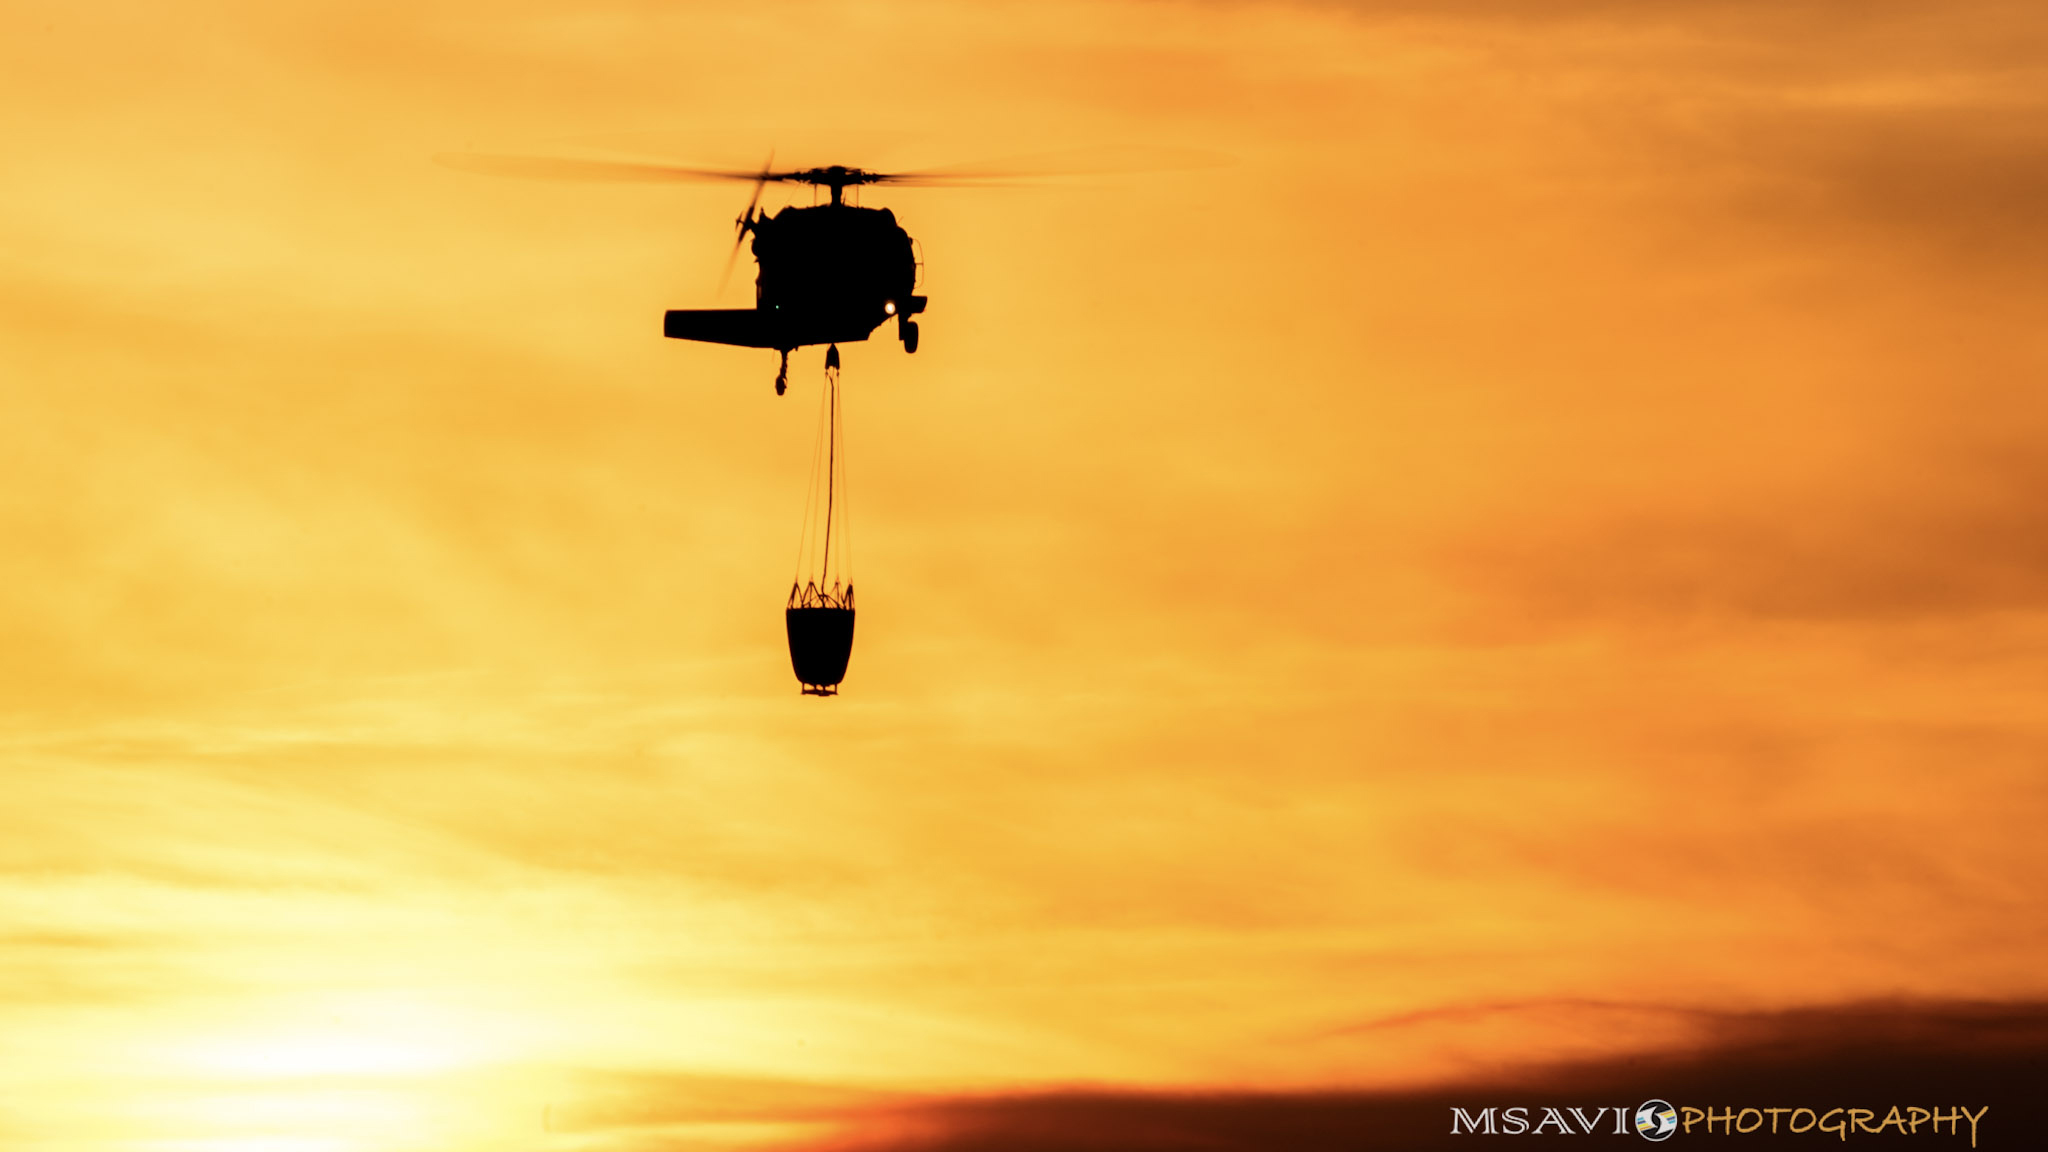 The sun frames a helicopter carrying a bucket during firefighting operations based at California's Santa Paula Airport. Photo by Mike Salas, MSAVI Photography and Focal Flight.